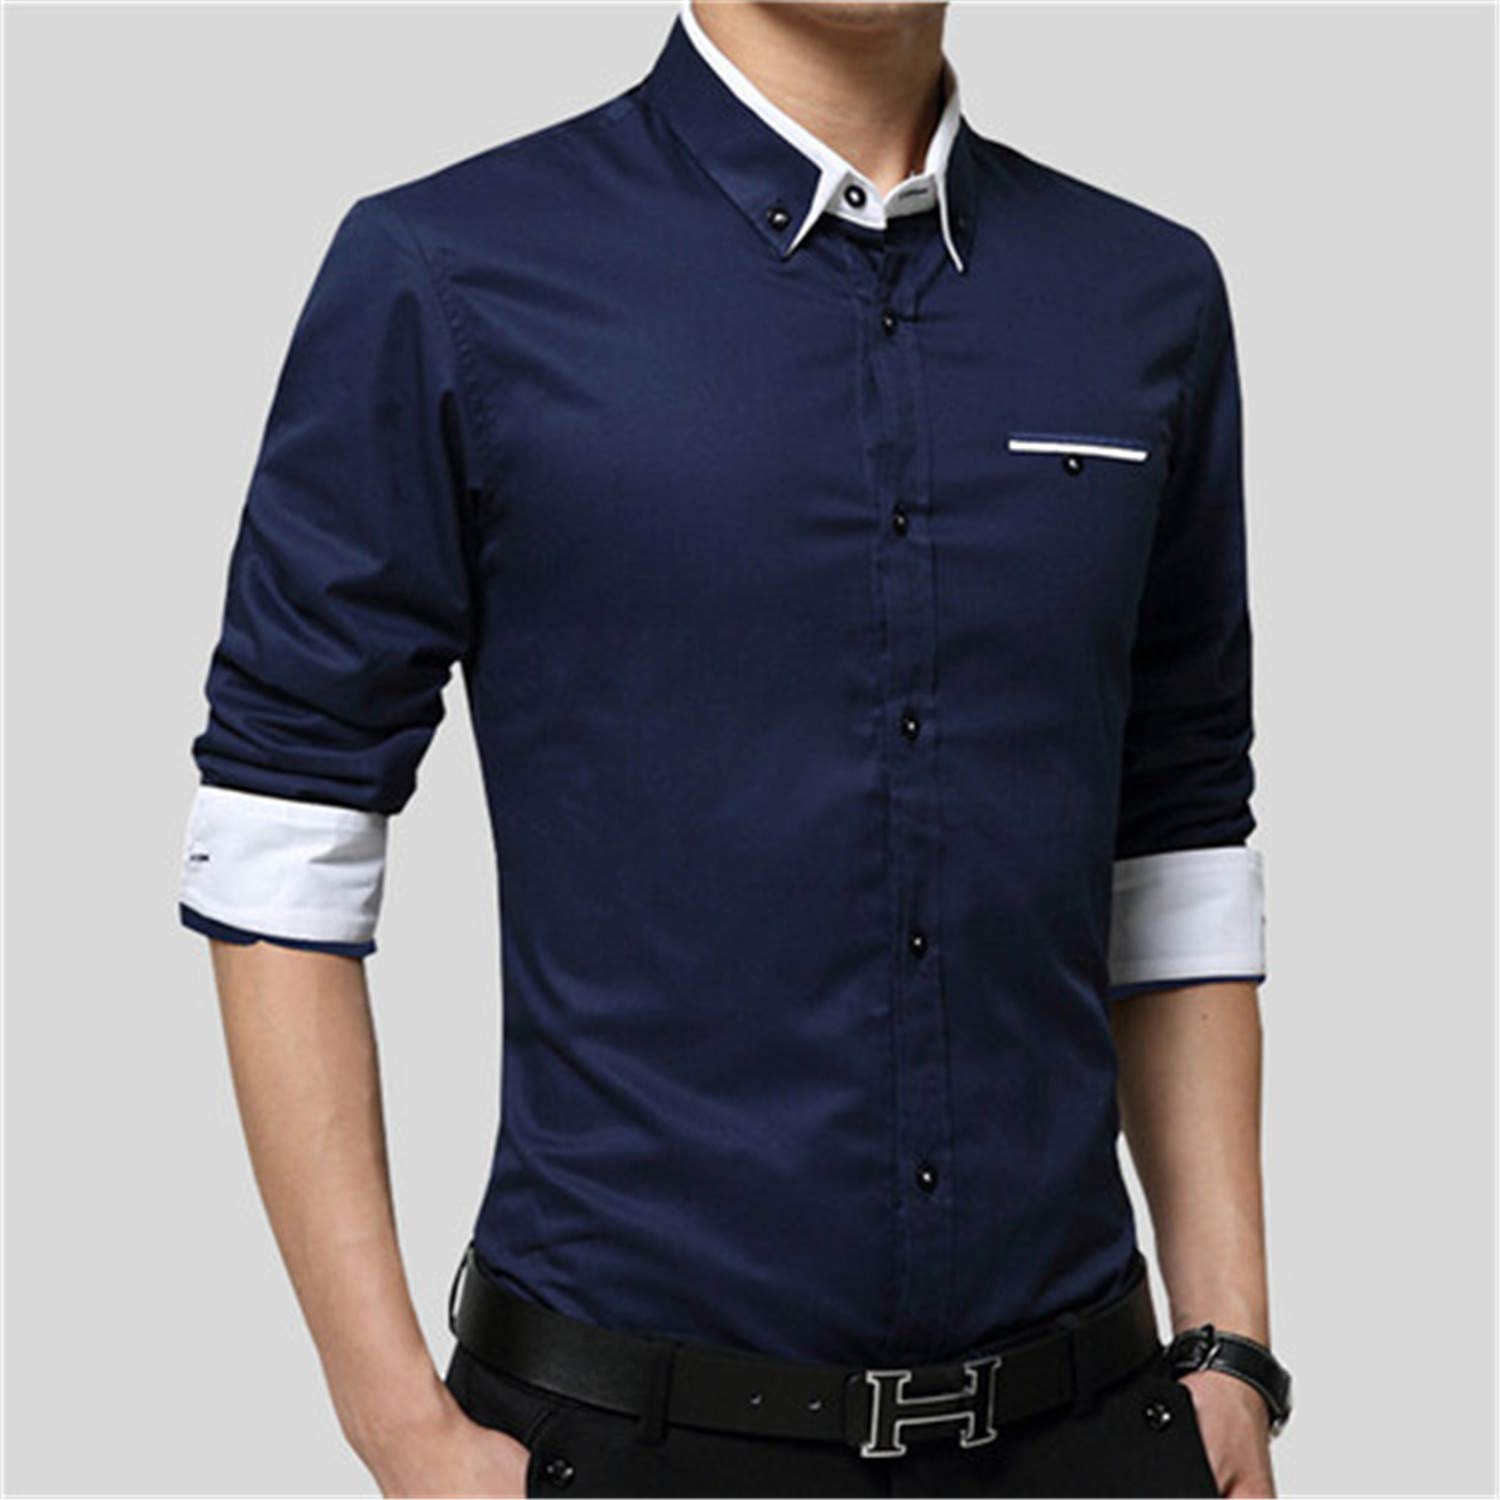 Susan1999 New Men Shirts Business Long Sleeve Turn-Down Collar 100/% Cotton Male Shirt Slim Fit Popular